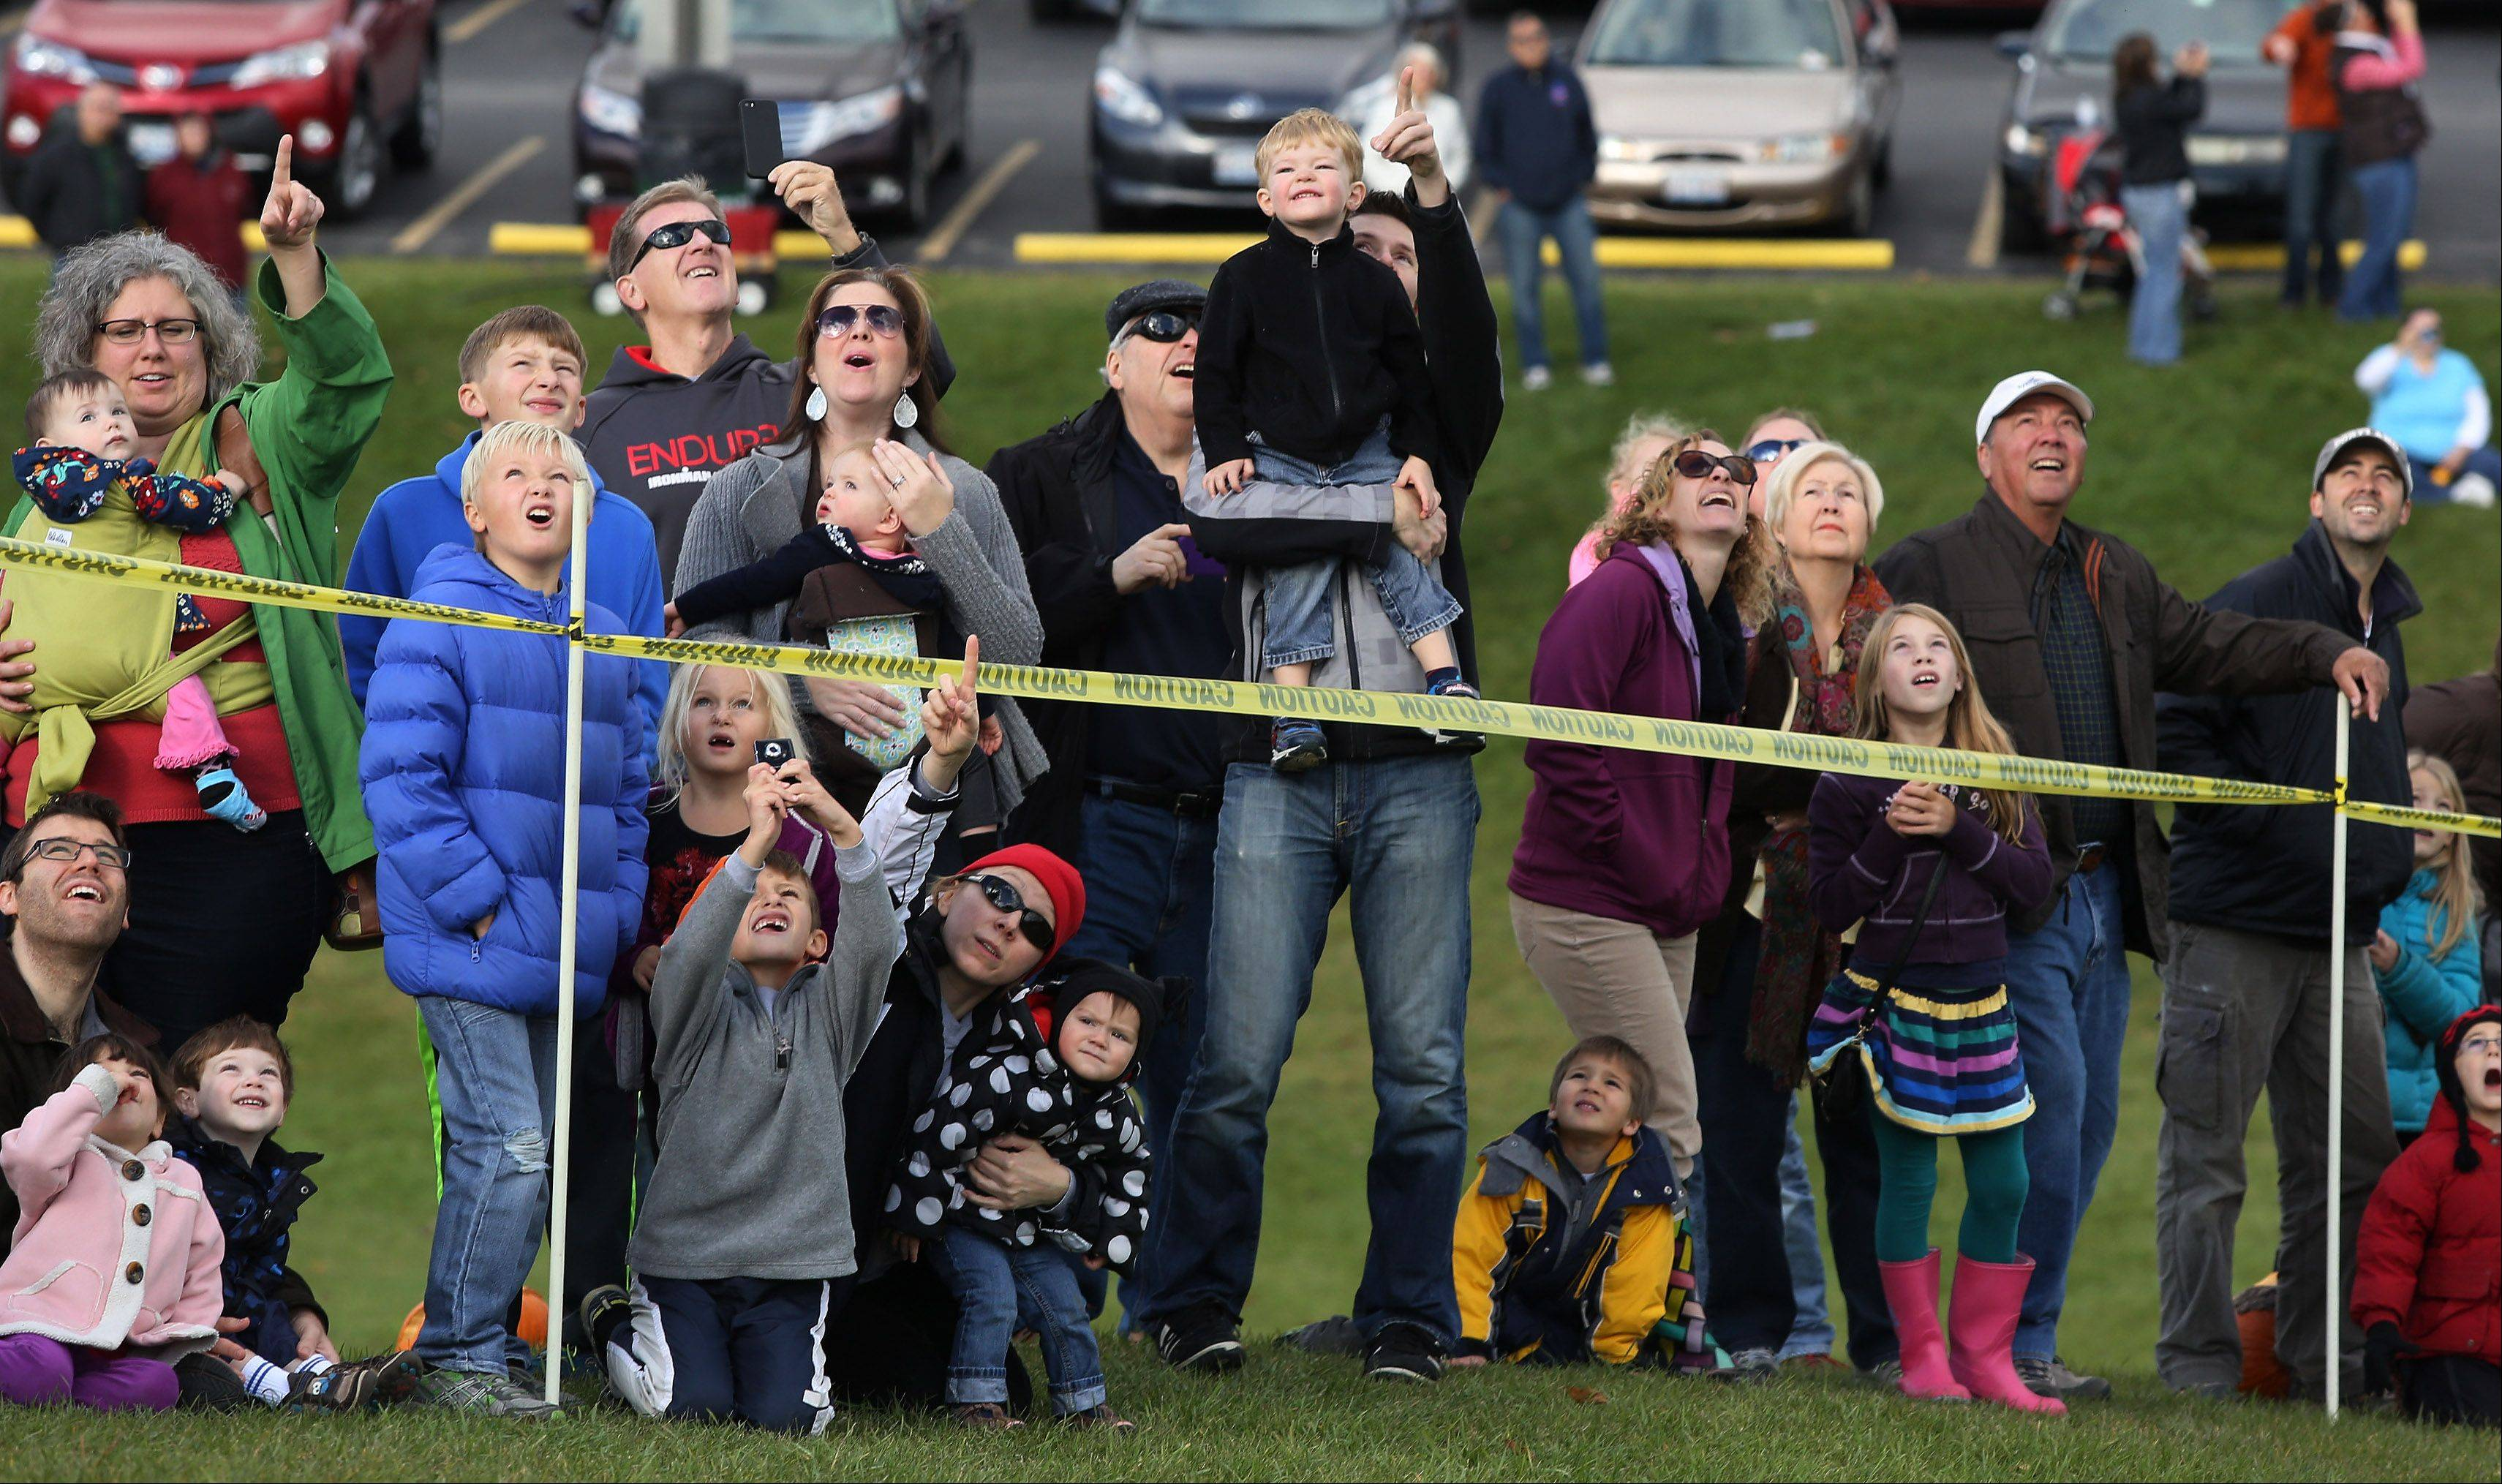 Spectators watch the launch of another pumpkin by Big Red, the catapult, during Mundelein's 6th Annual Pumpkin Drop Sunday at Keith Mione Community Park. Families brought their Halloween pumpkins to the event where they were bashed, rolled and flung with the catapult.